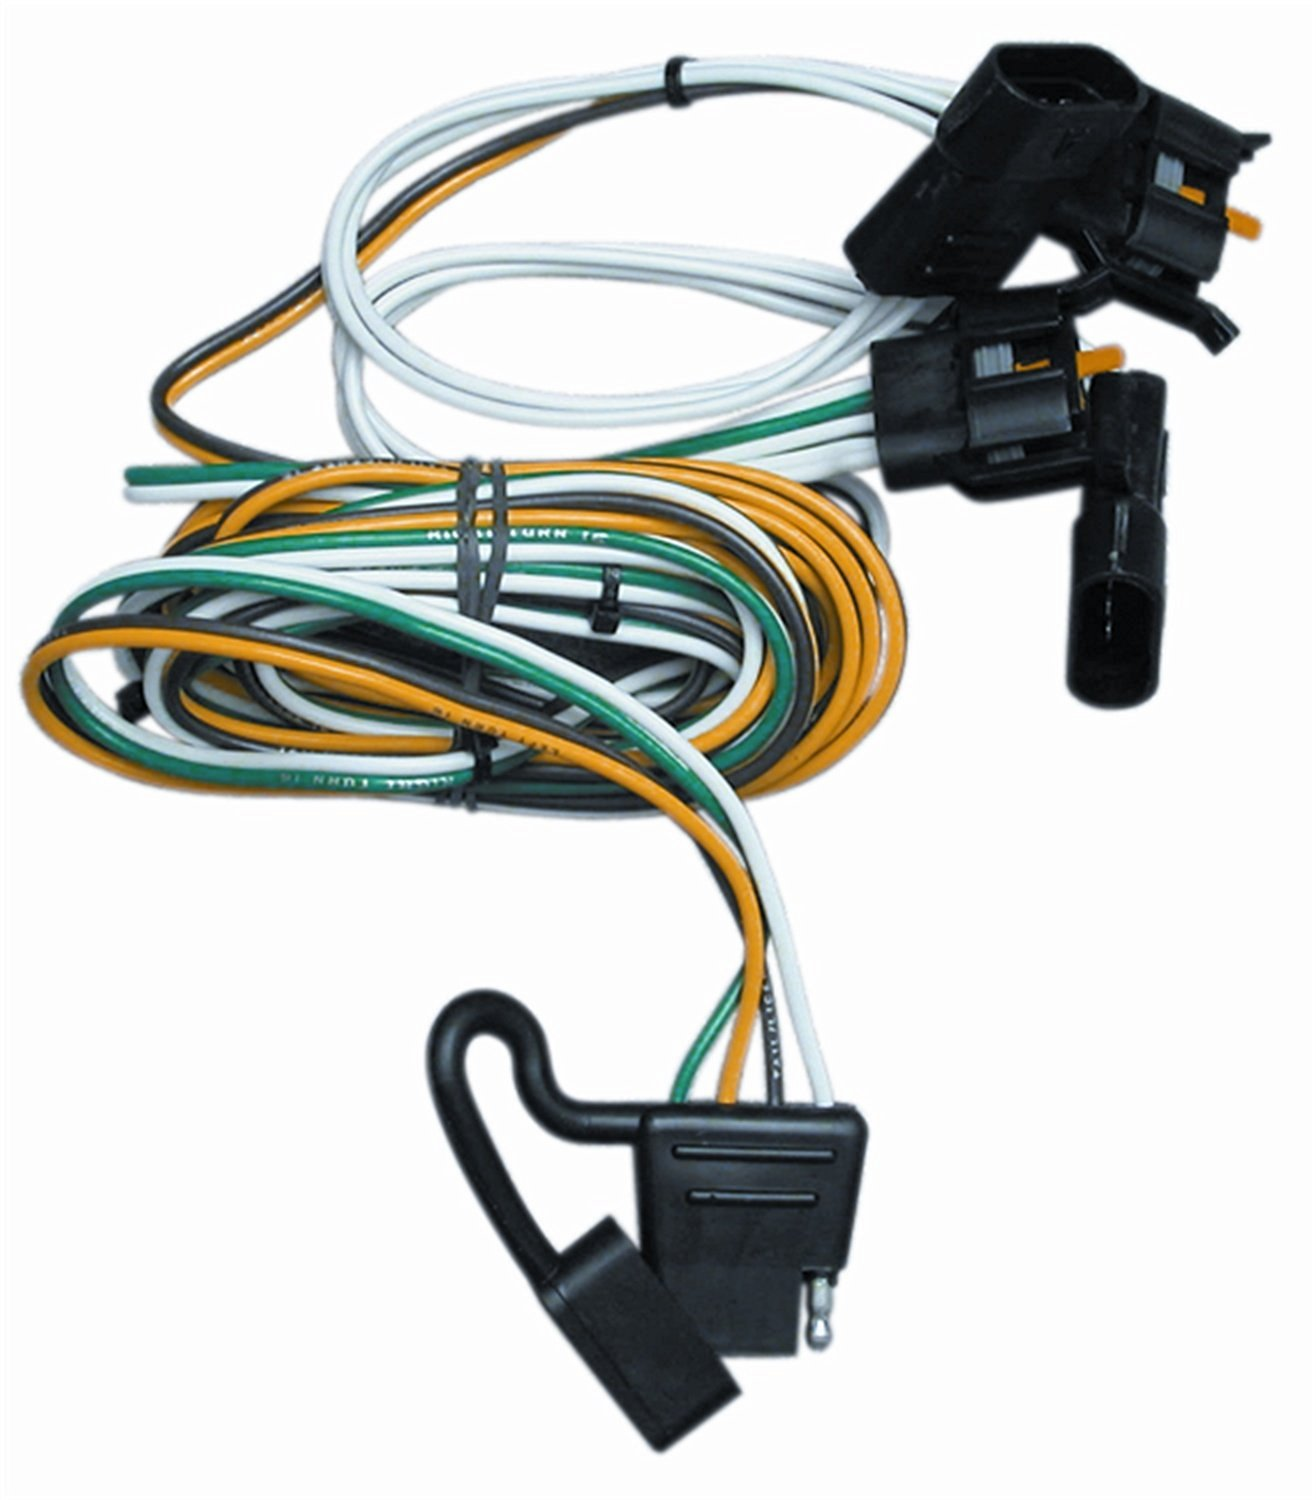 hight resolution of trailer wiring 95 03 ford e 150 e 250 e 350 van 00 03 excursion 97 99 escort